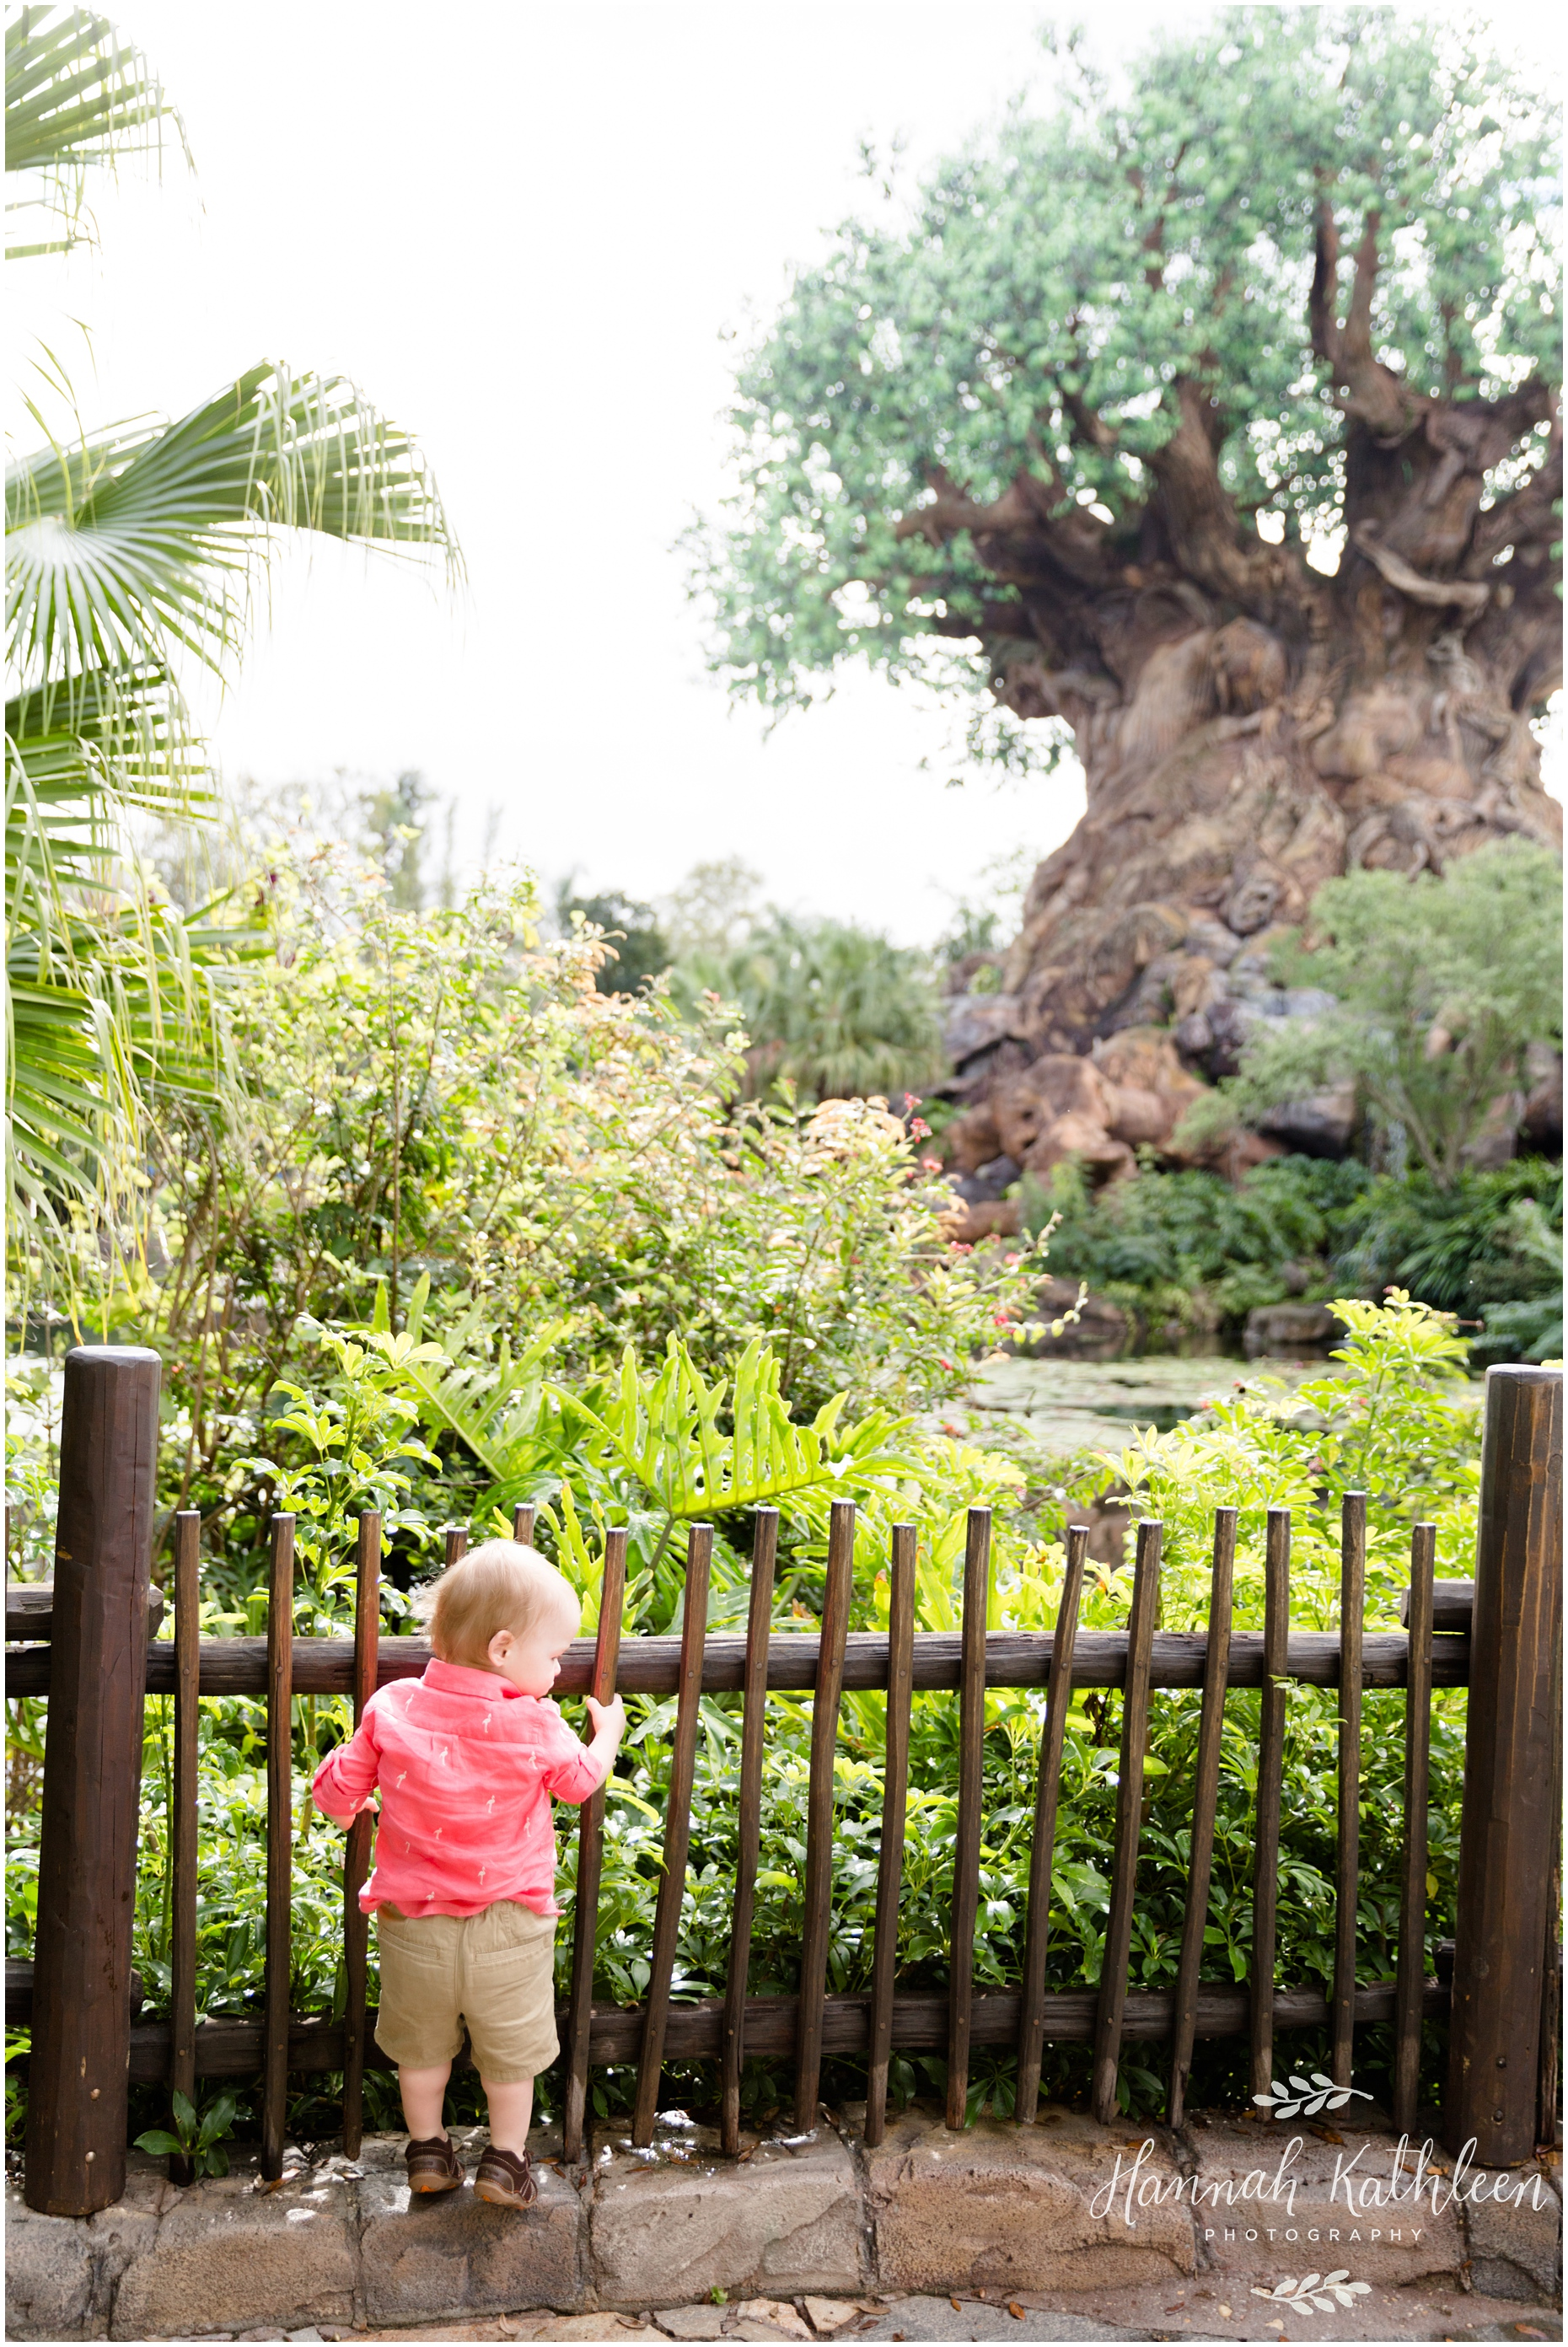 Masterson_Disney_Parks_Family_Animal_Kingdom_Disneyland_Photographer